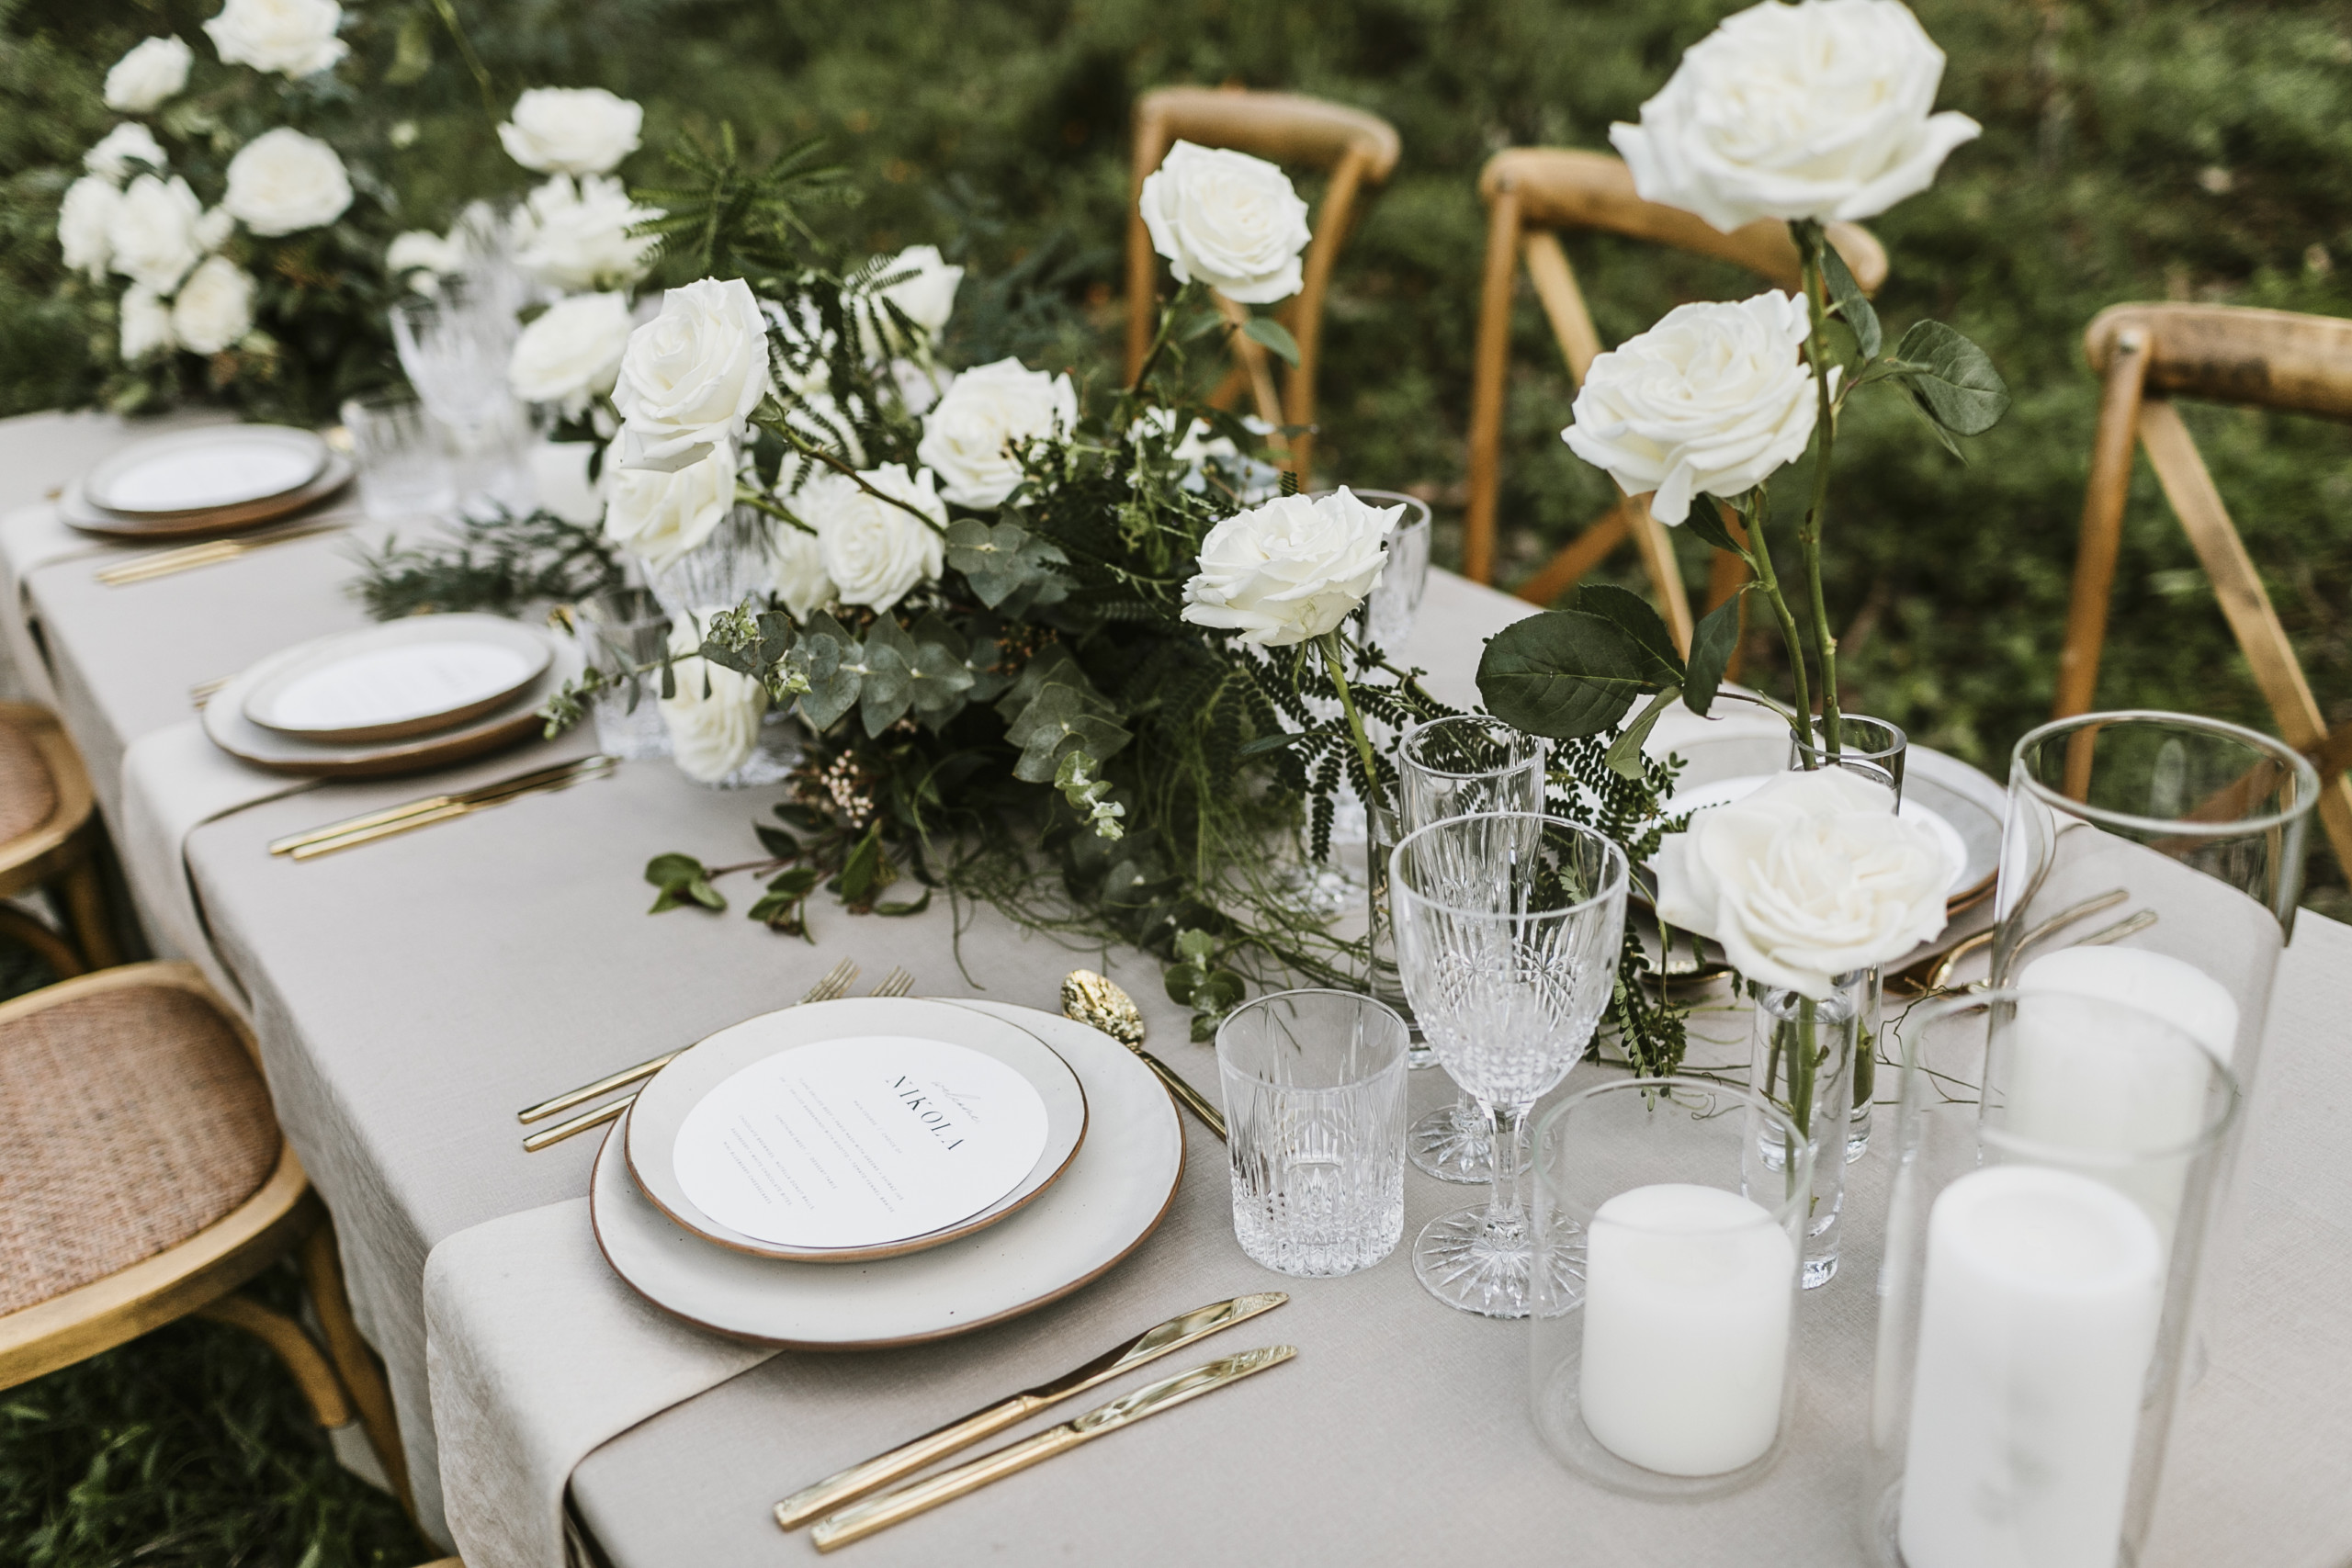 wedding crockery glassware linen